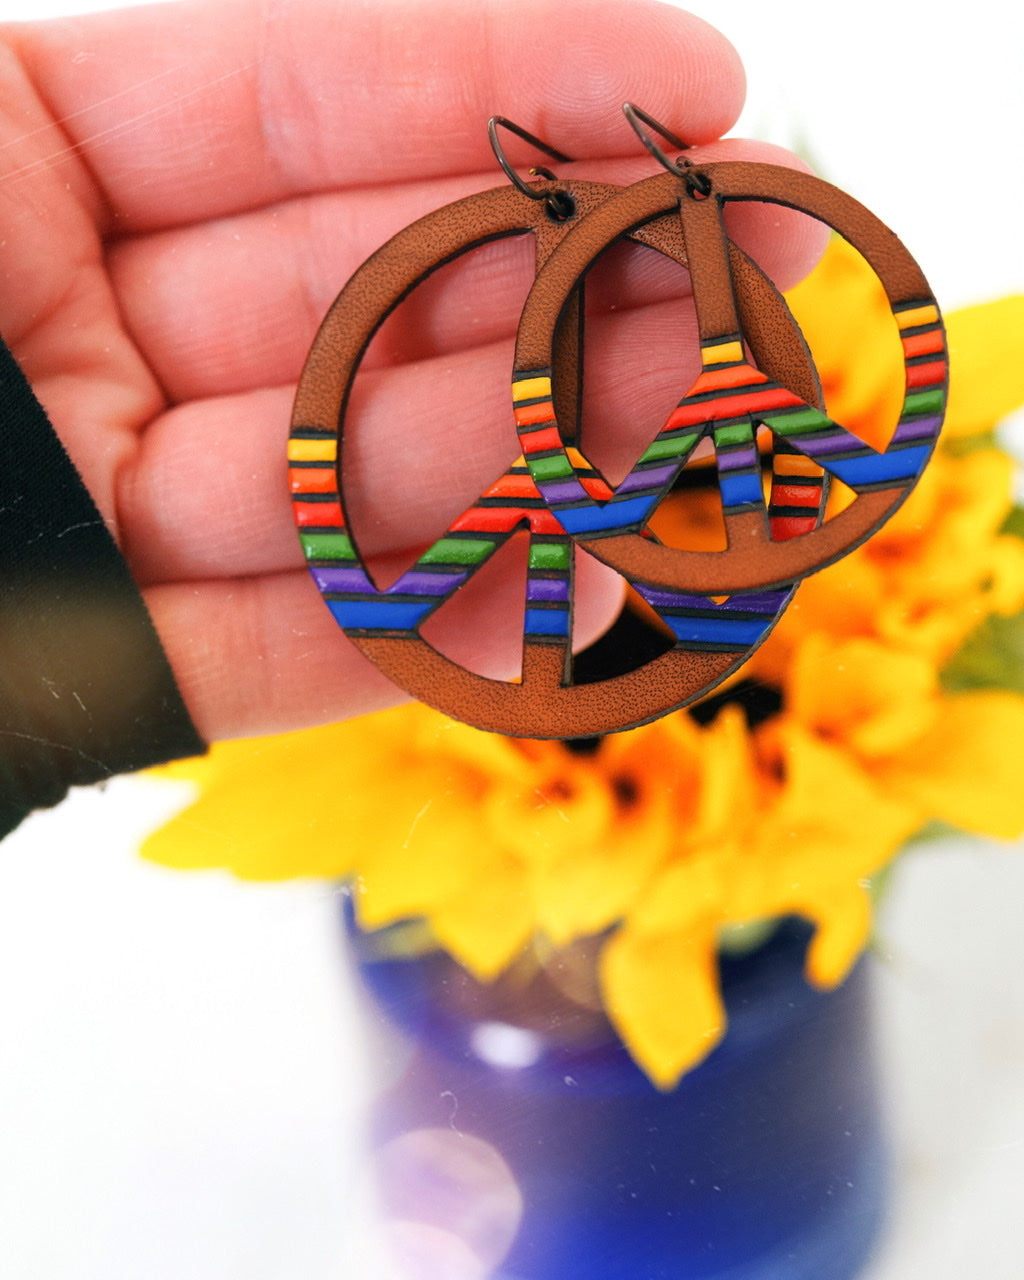 '80s Rainbow Mood Striped Peace Sign Earrings - Pick Your Size